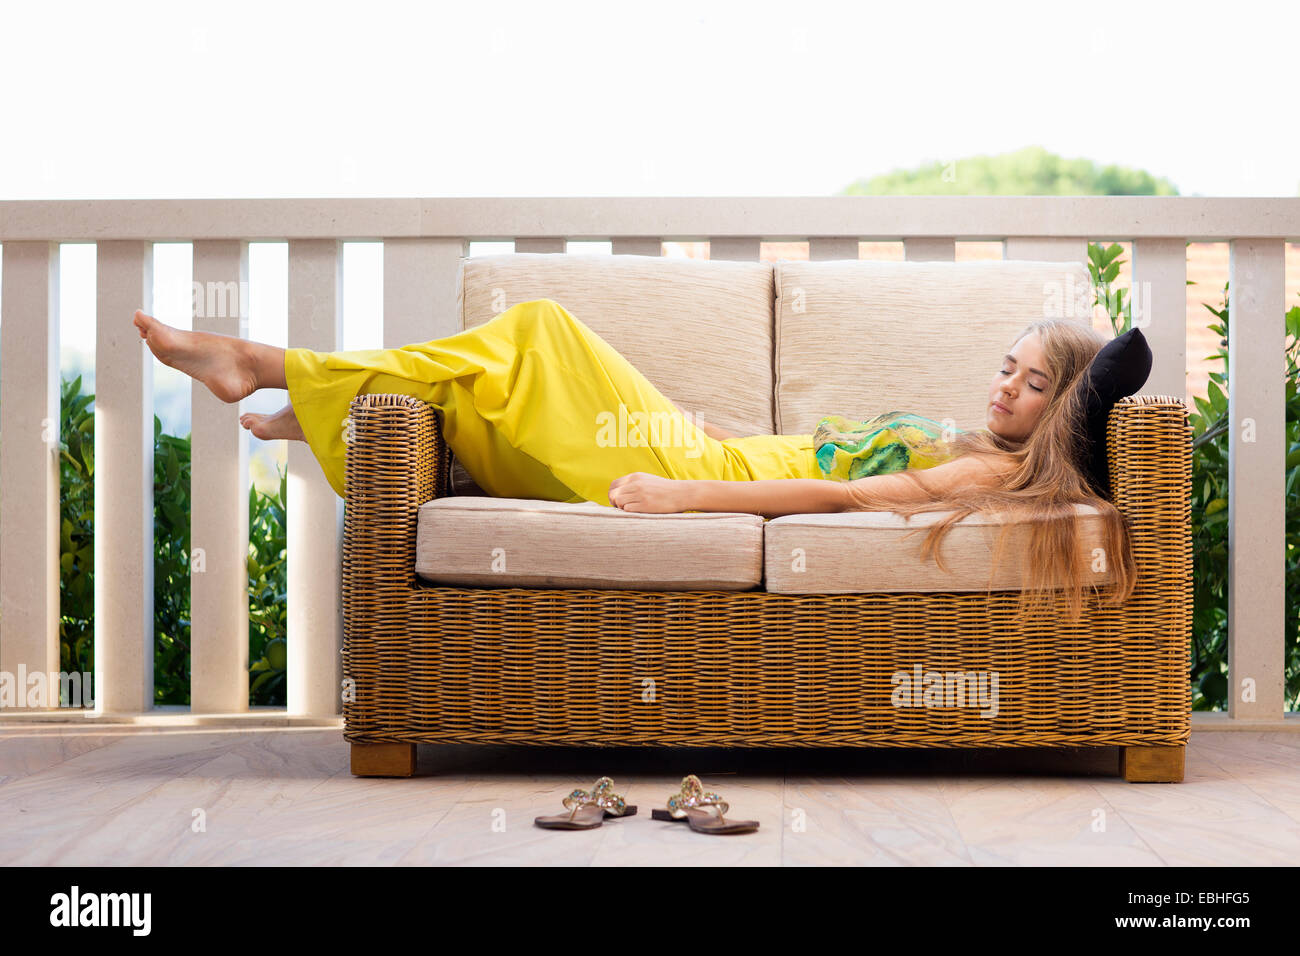 Young woman asleep on balcony sofa, Milna, Brac, Croatia - Stock Image